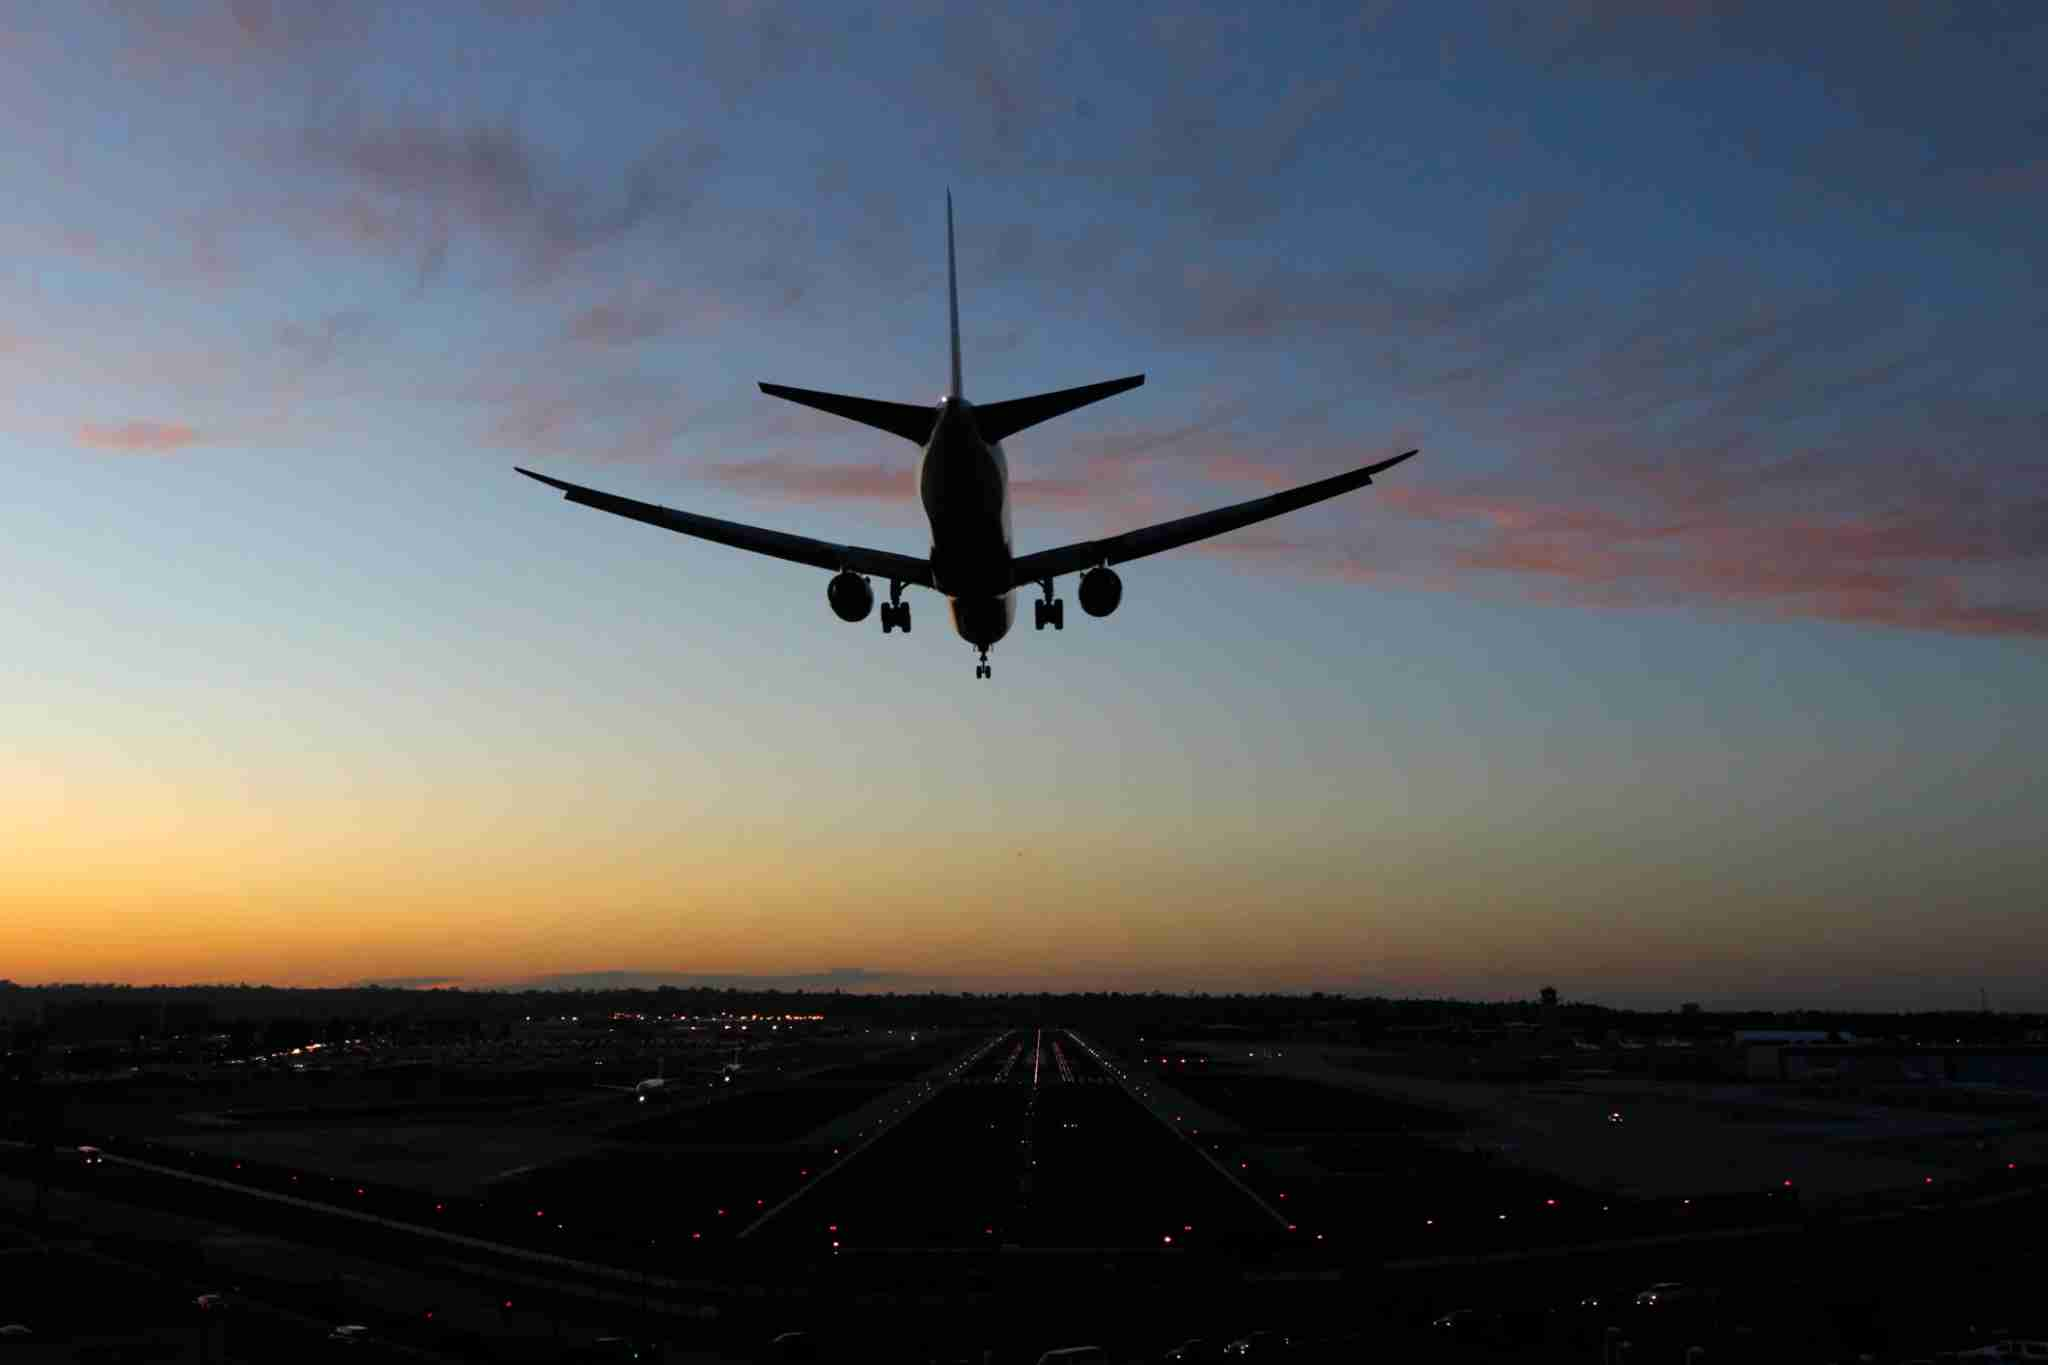 A 787 jet airplane lands at San Diego International Airport at sunset.